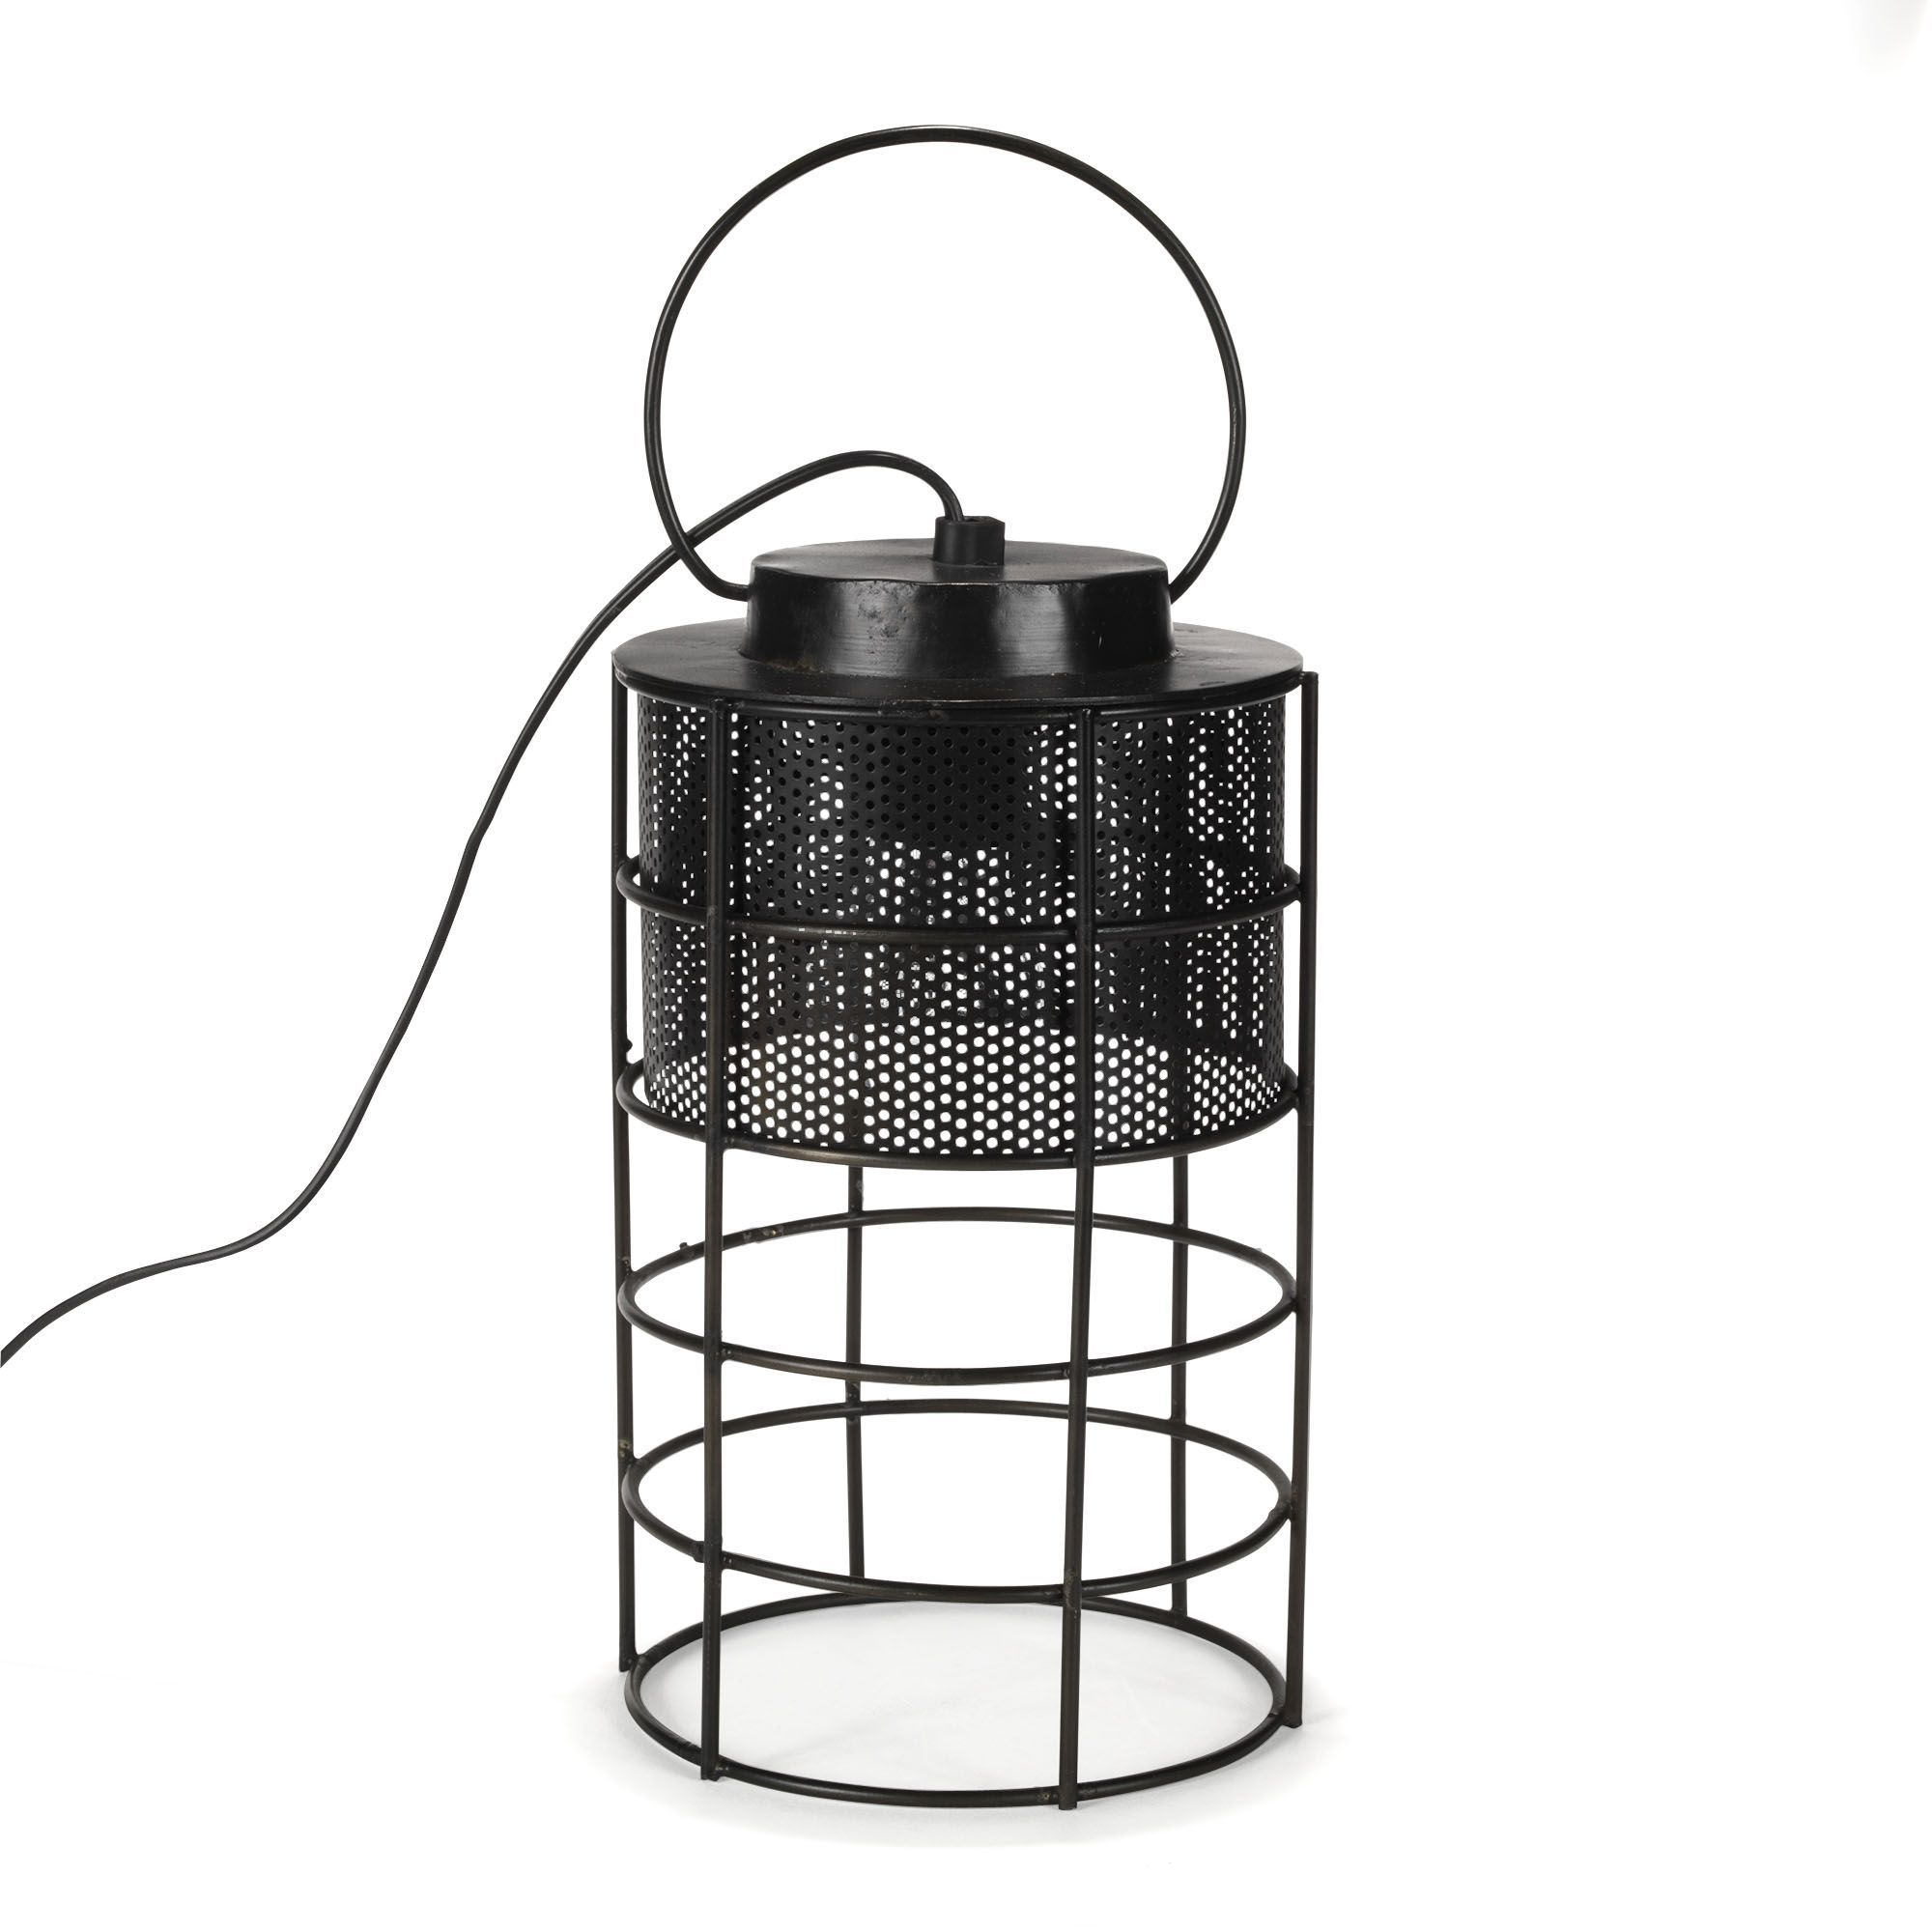 Eclairage Style Industriel Lampe Baladeuse Style Industriel Noir Oxydé Faraday